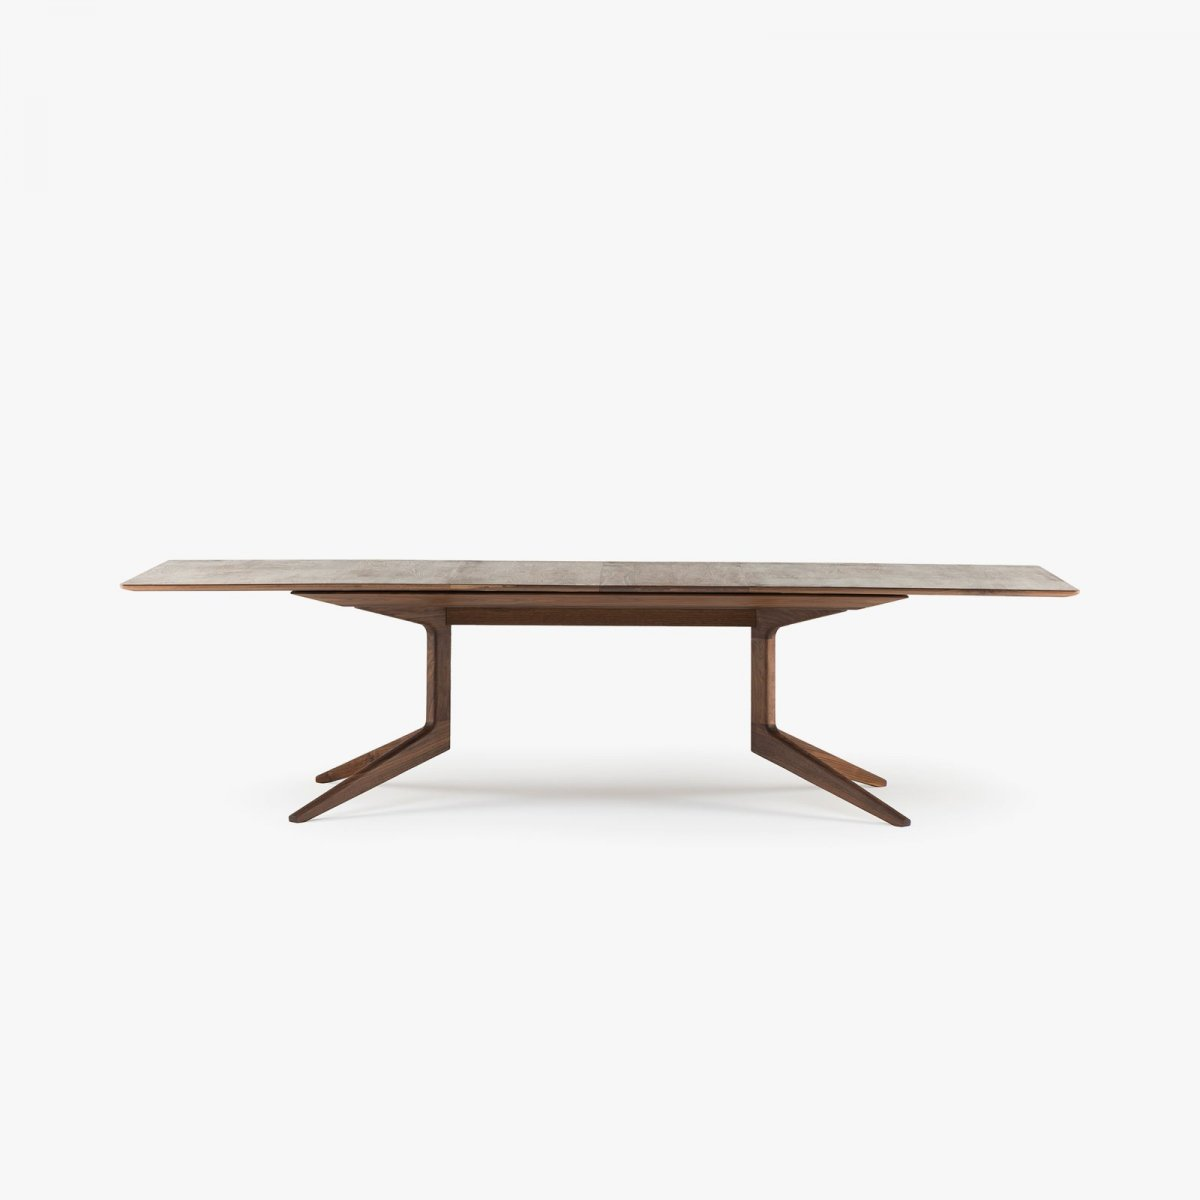 341E Light Extending Table in Danish oiled walnut, 2 leaves in place.